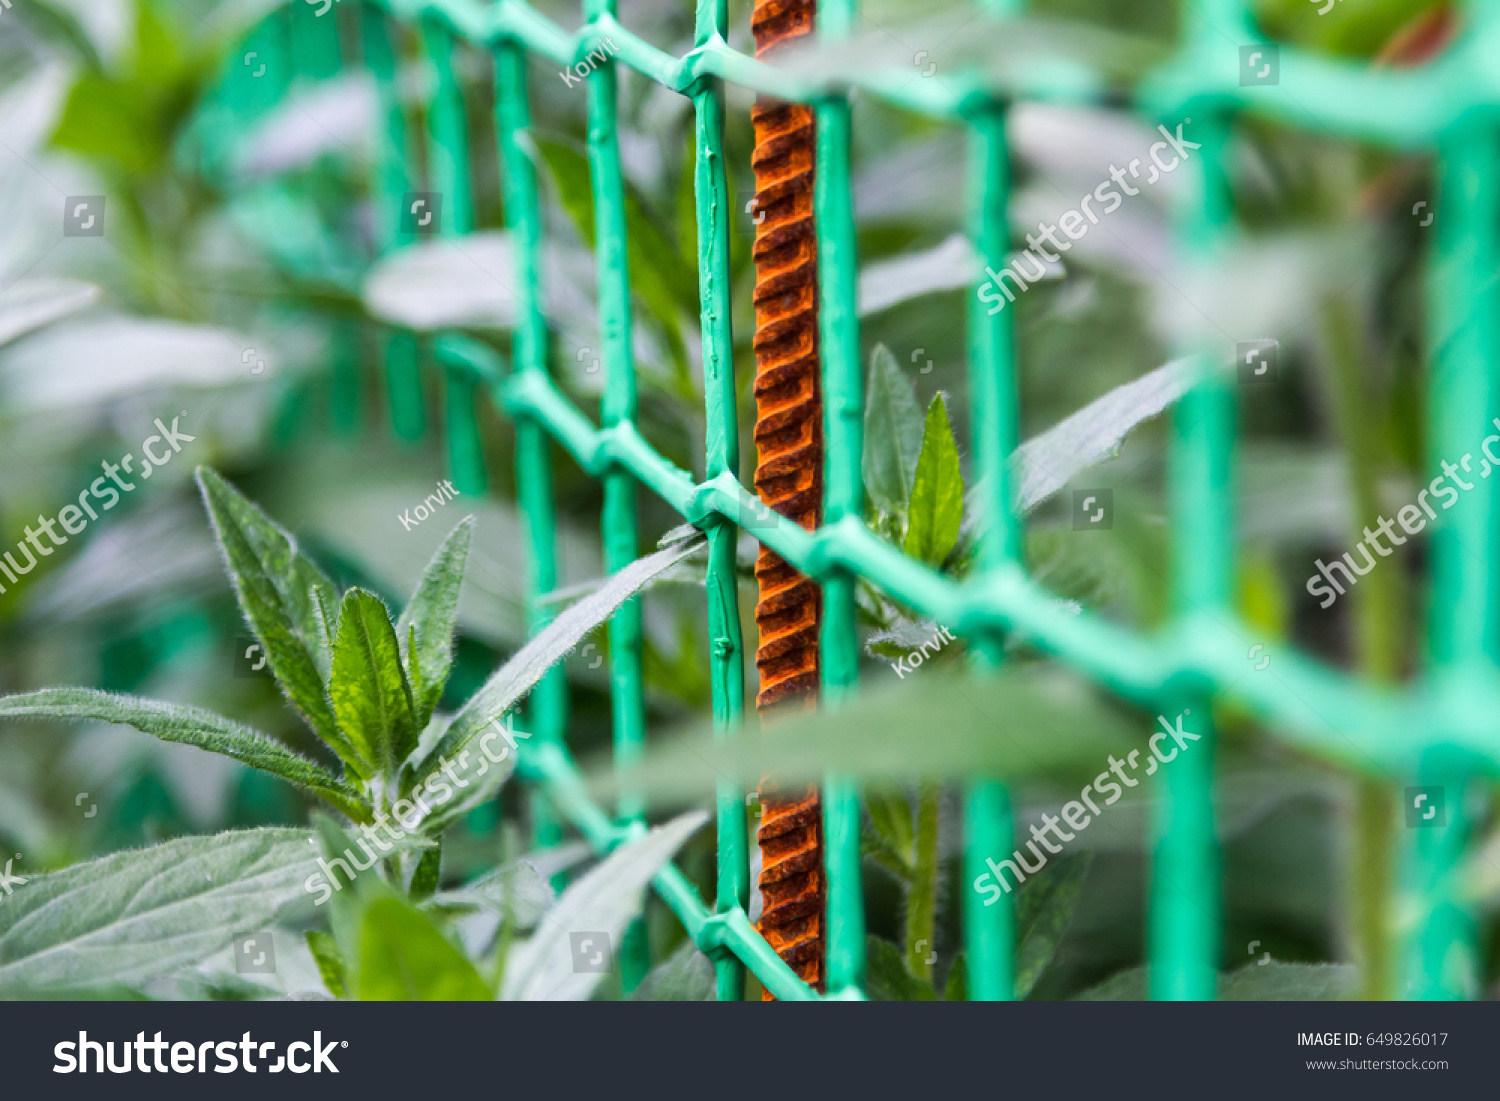 Green Mesh Netting Rusty Reinforcement Among Stock Photo